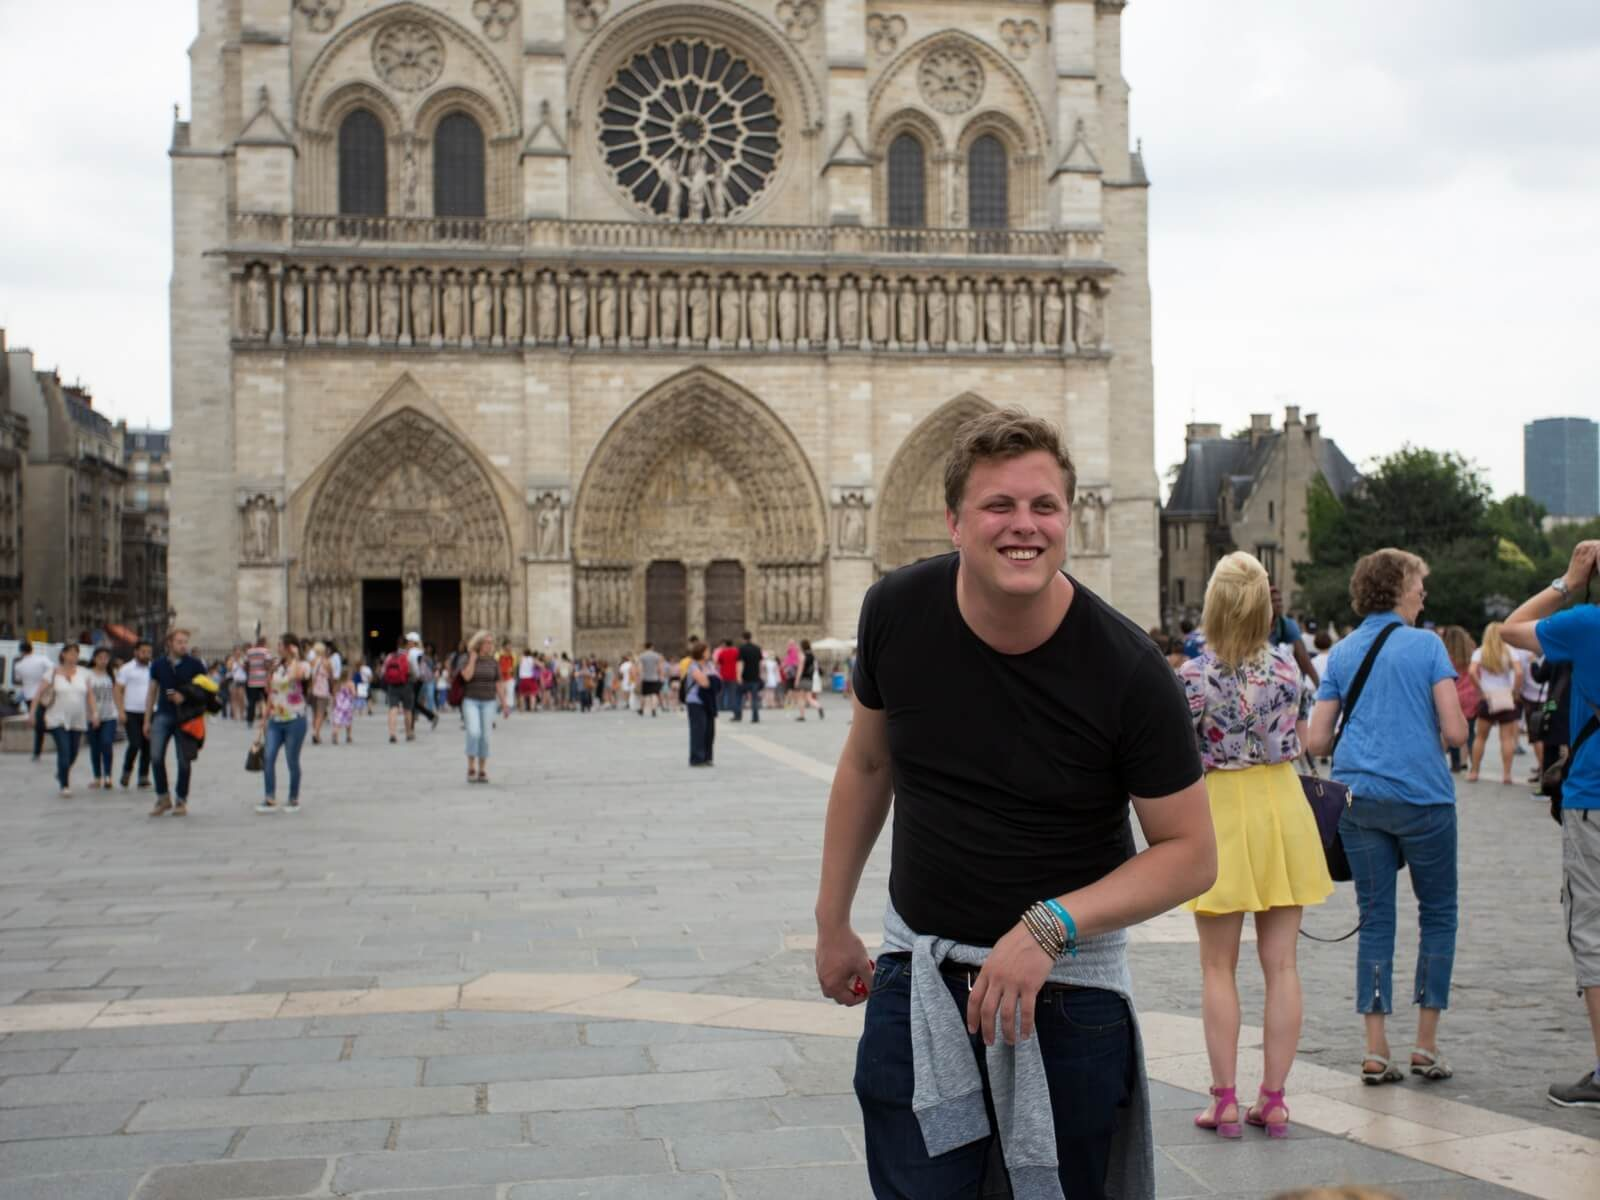 Man in front of Notre Dame Cathedral pretending to be the Hunchback